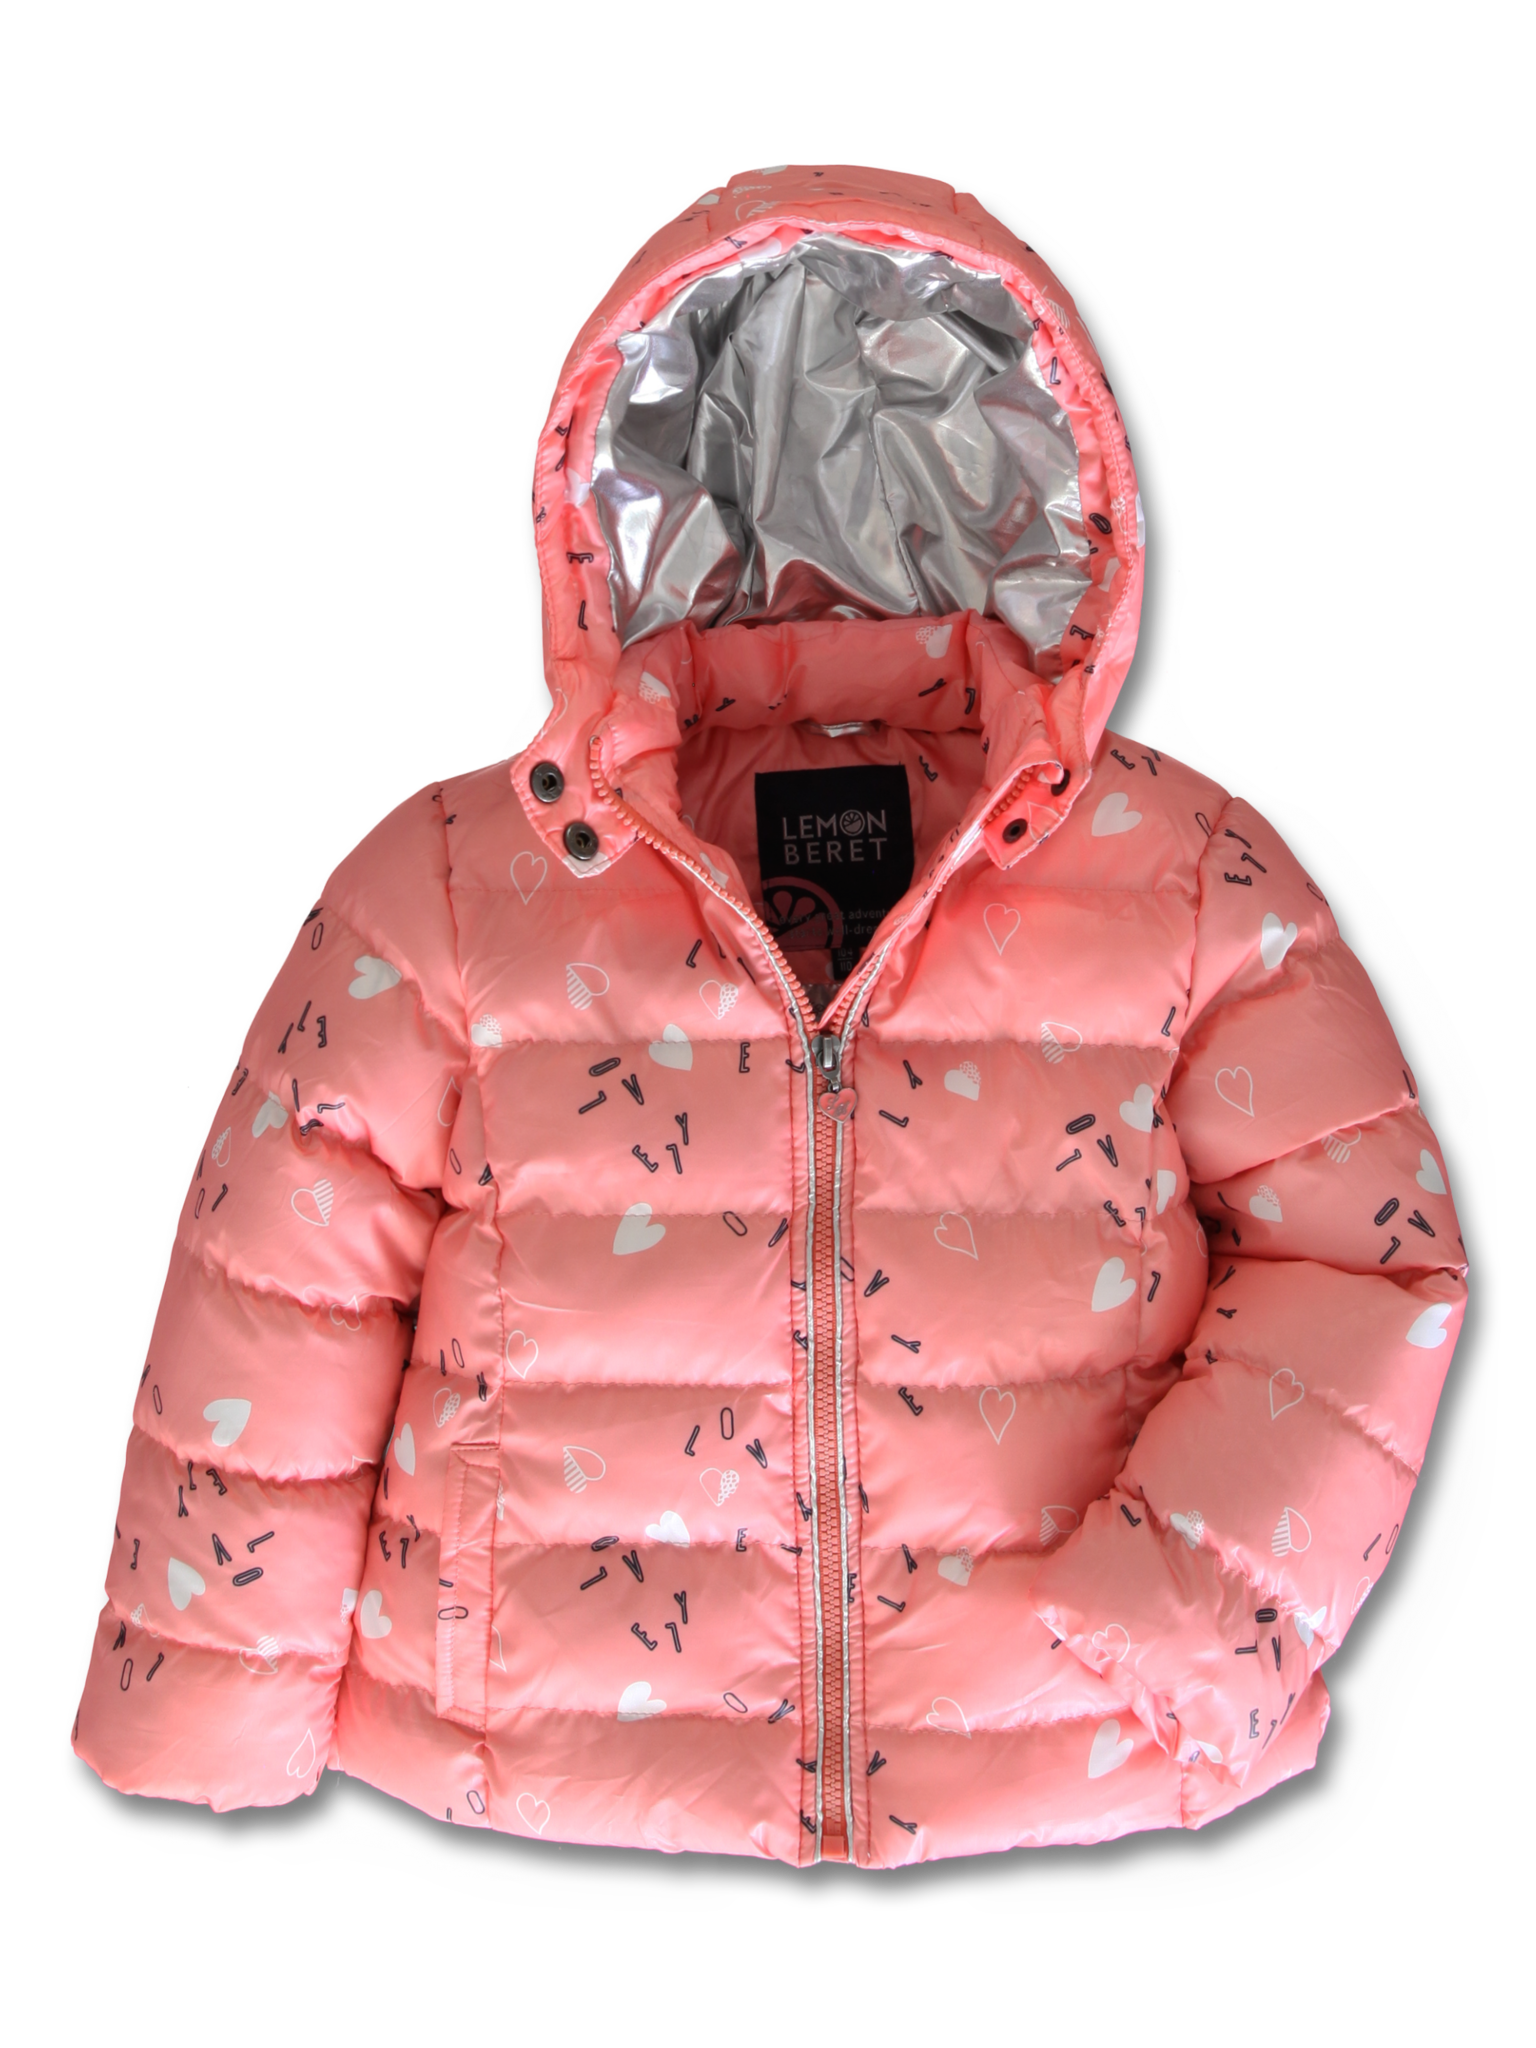 All Brands | Winterproducts Small Girls | Jacket | 10 pcs/box